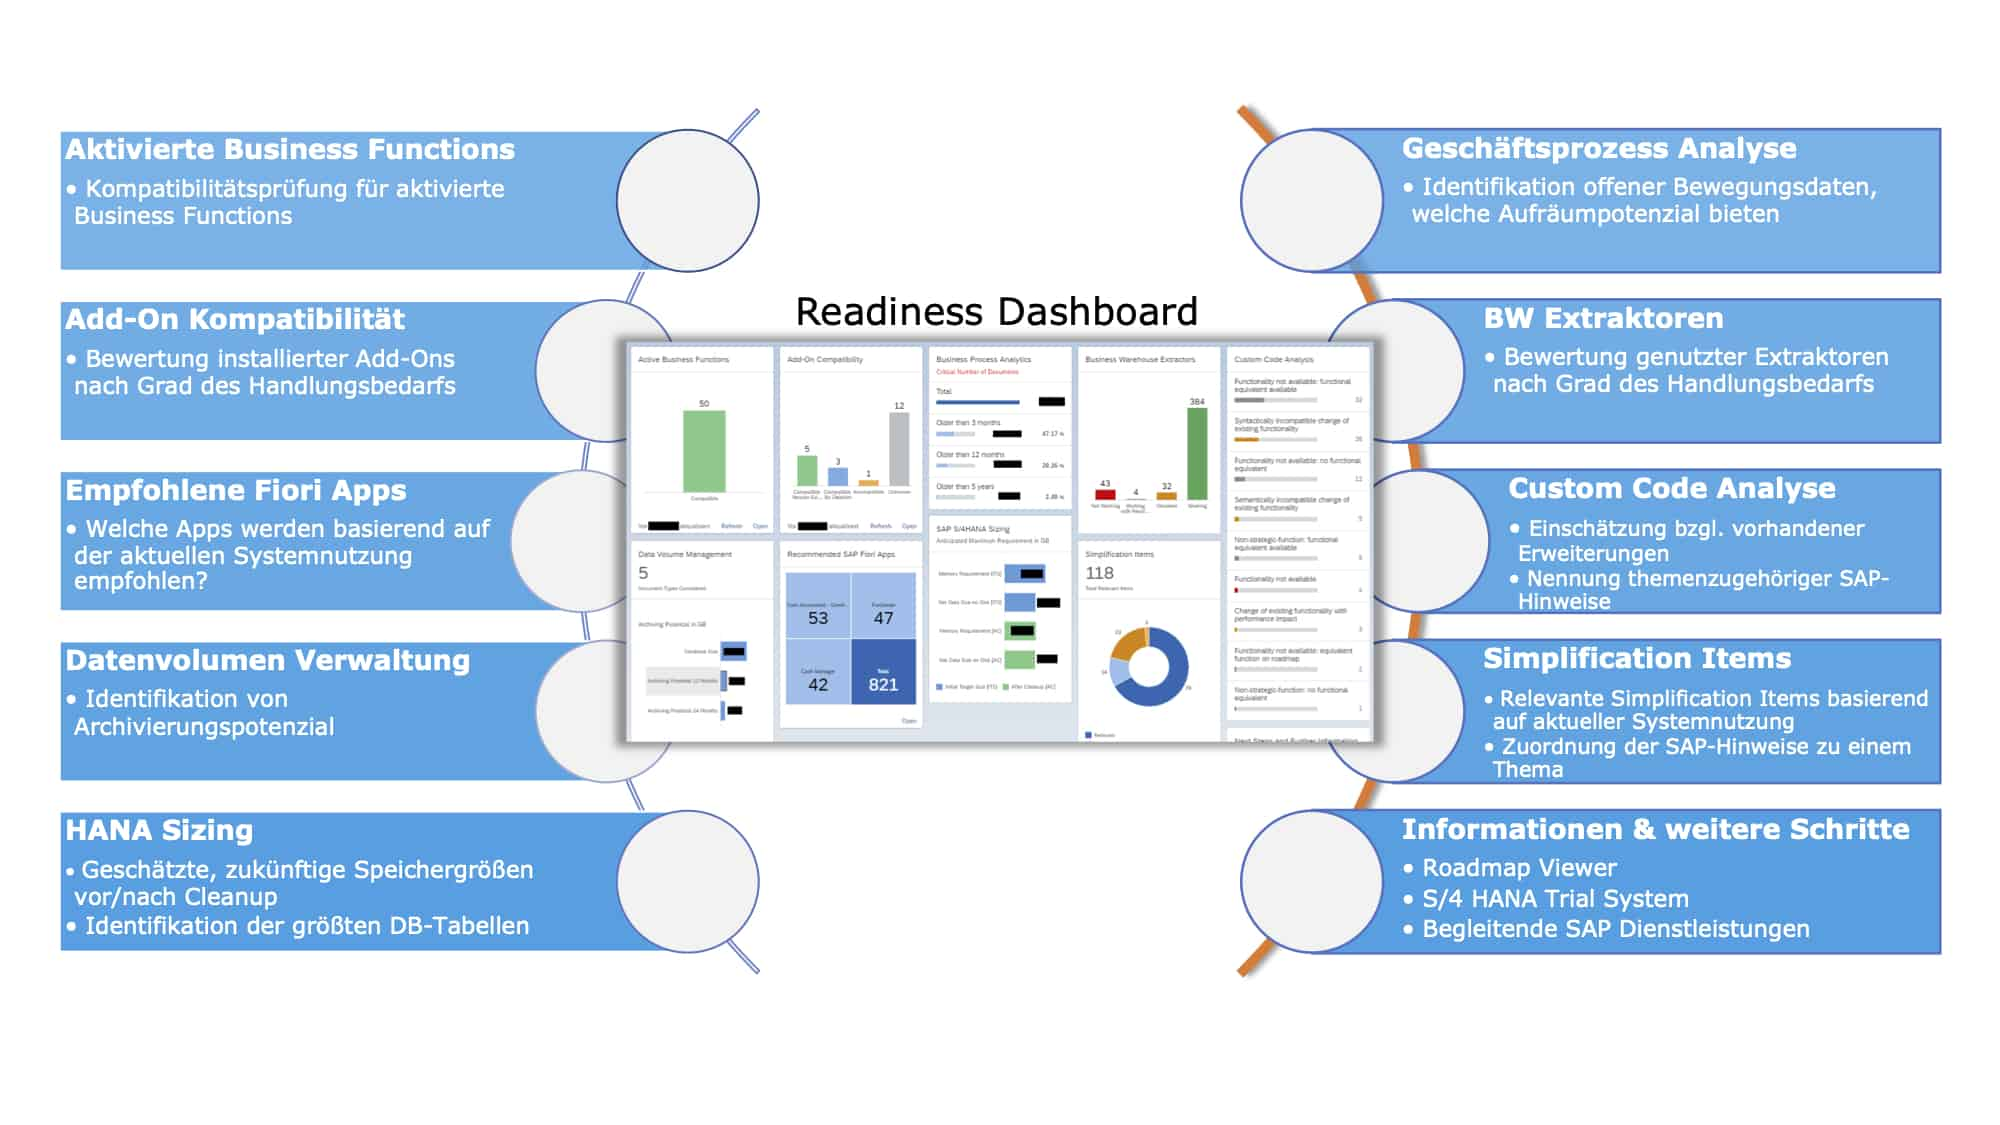 SAP S/4HANA Readiness Dashboard